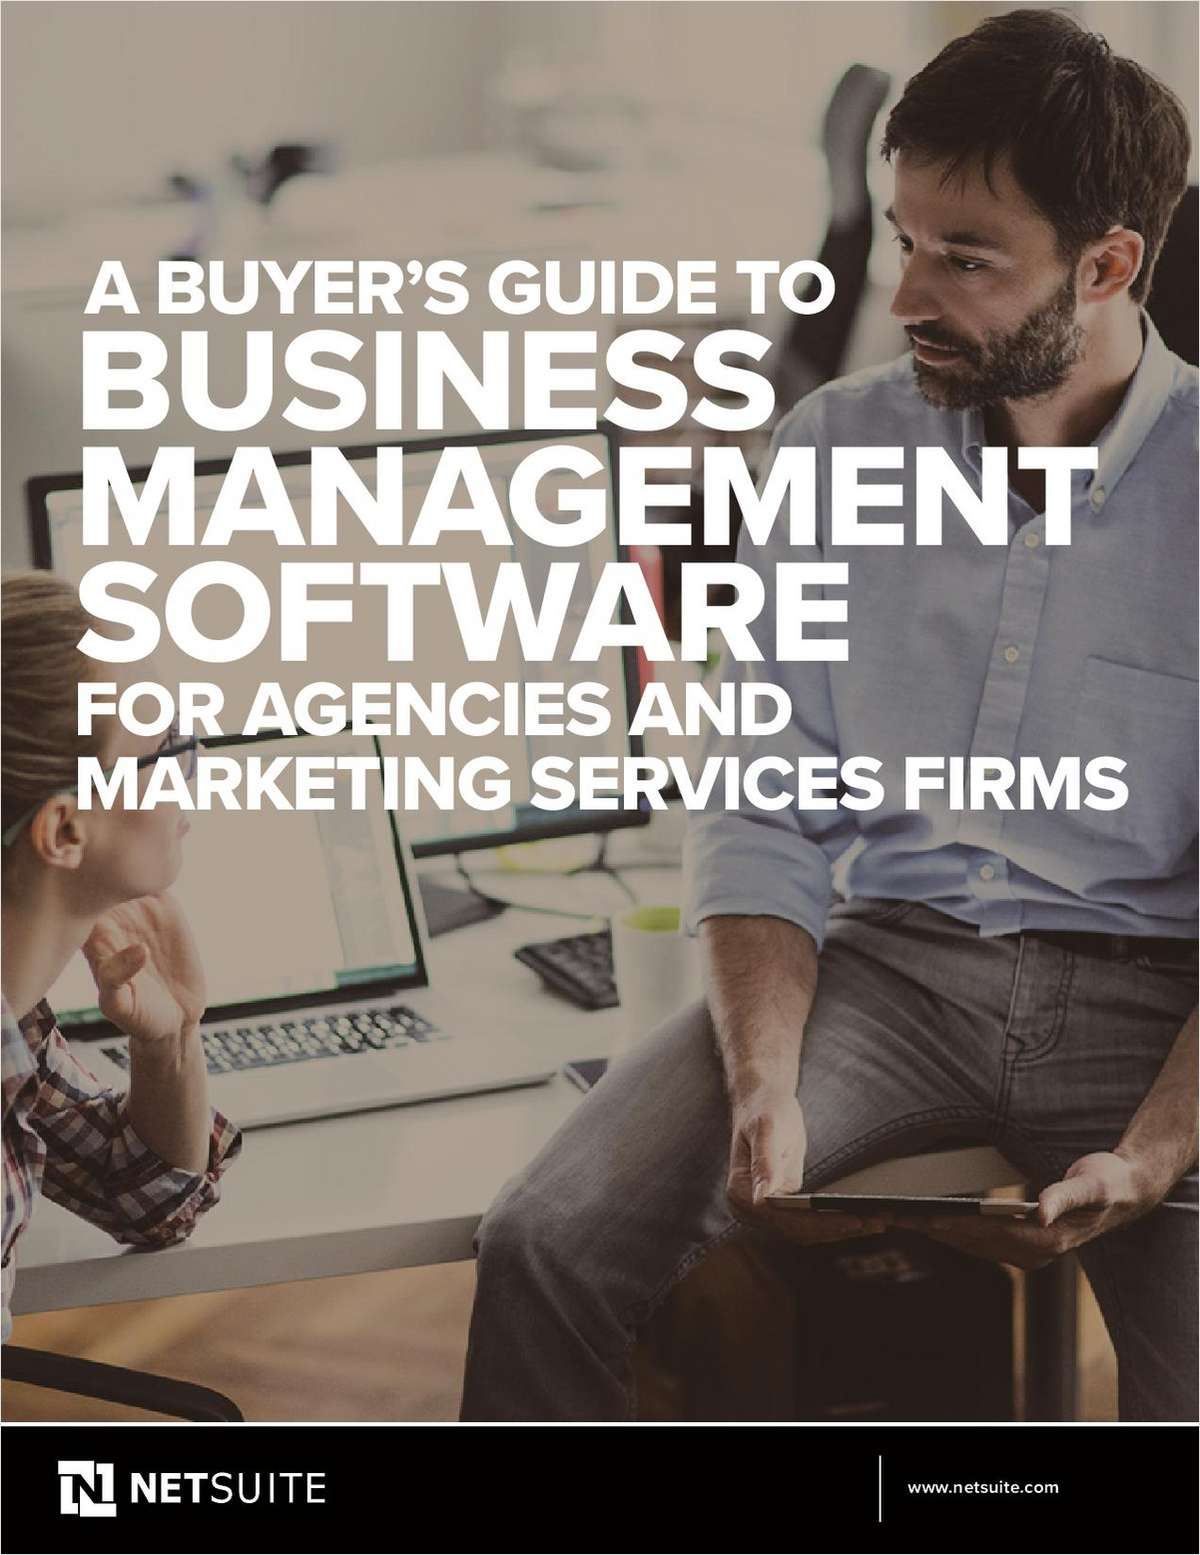 Business Management Software for Agencies and Marketing Services Firms